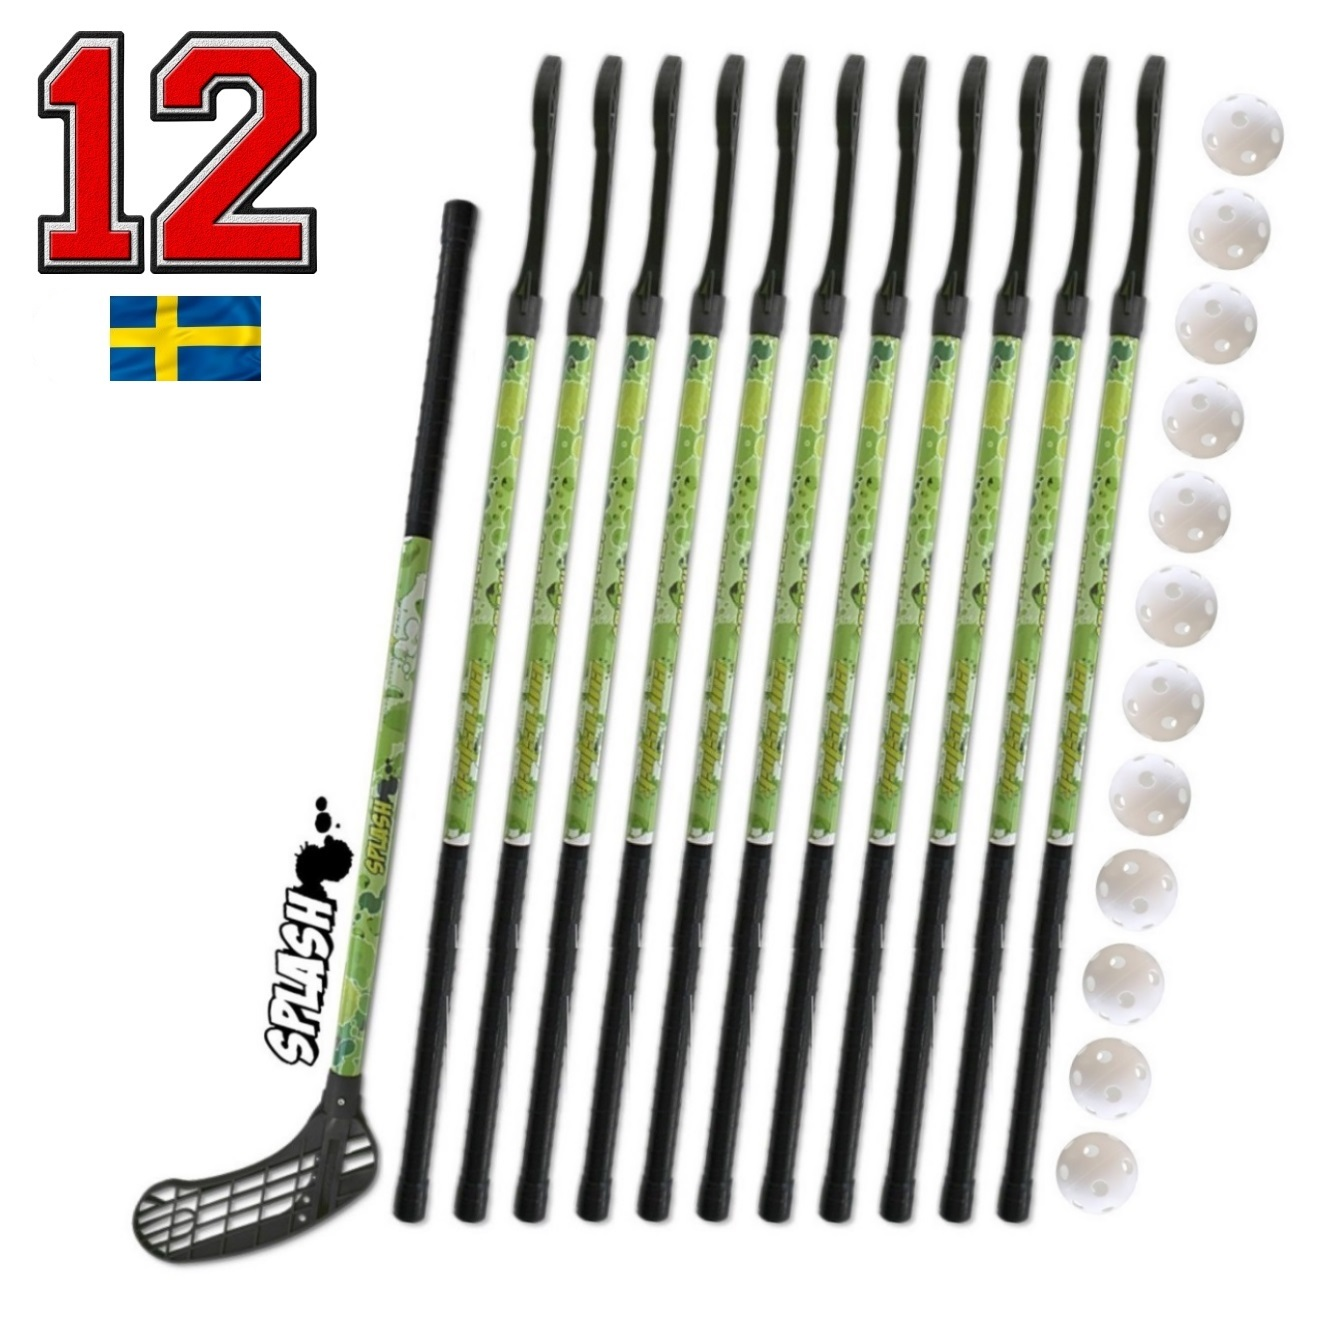 Florbalová sada Eurostick SPLASH GREEN 95 cm 12+12 set